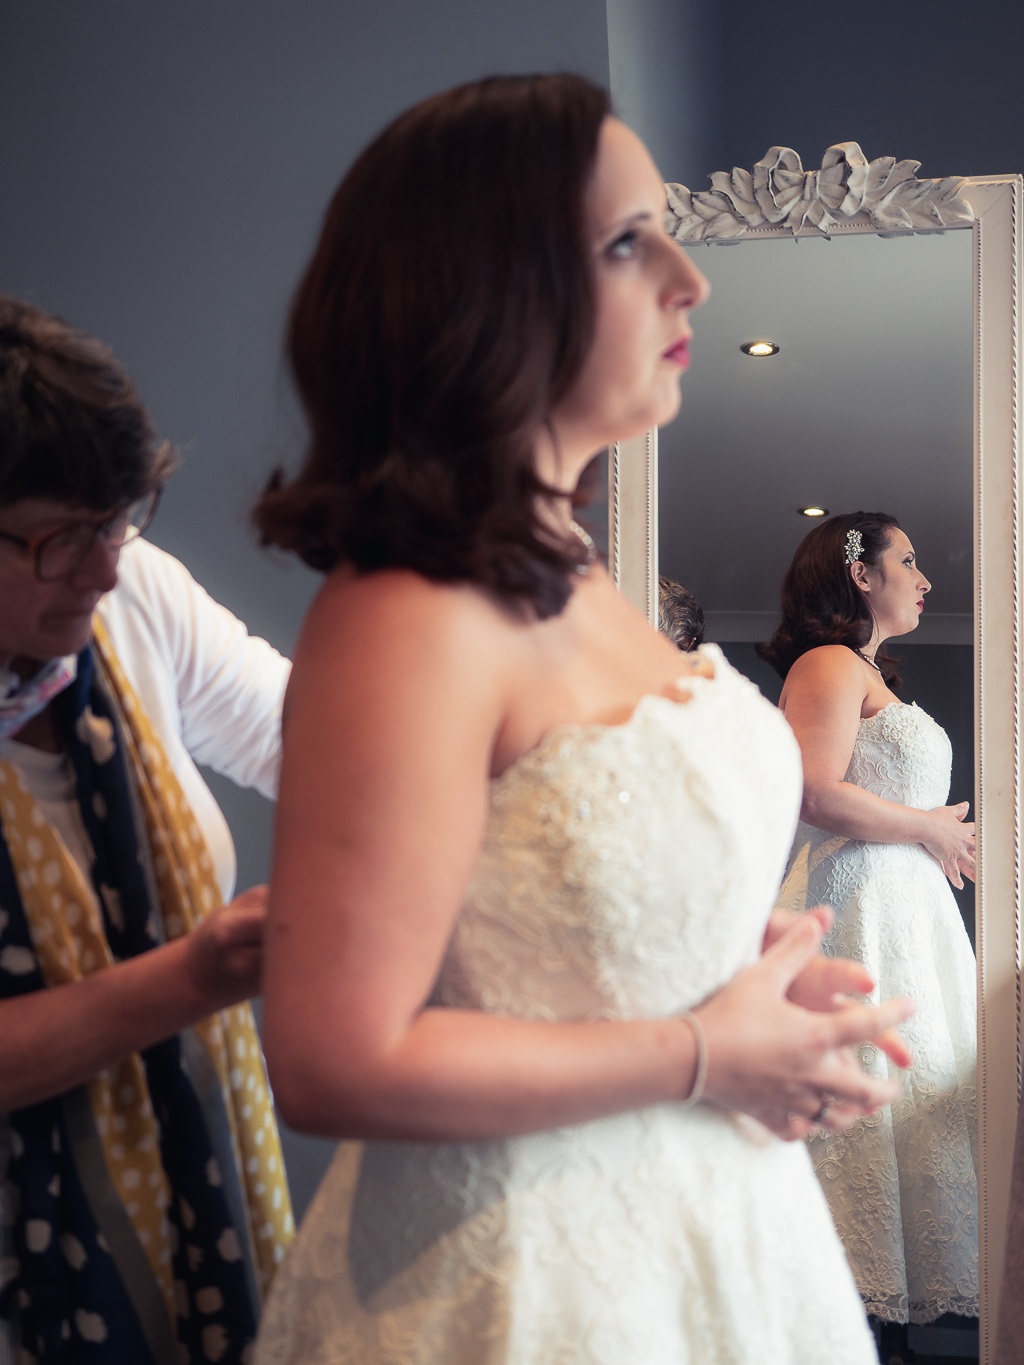 Traditional vintage styled wedding photoshoot at The Orangery Suite, photographer credit Dom Brenton Photography (12)